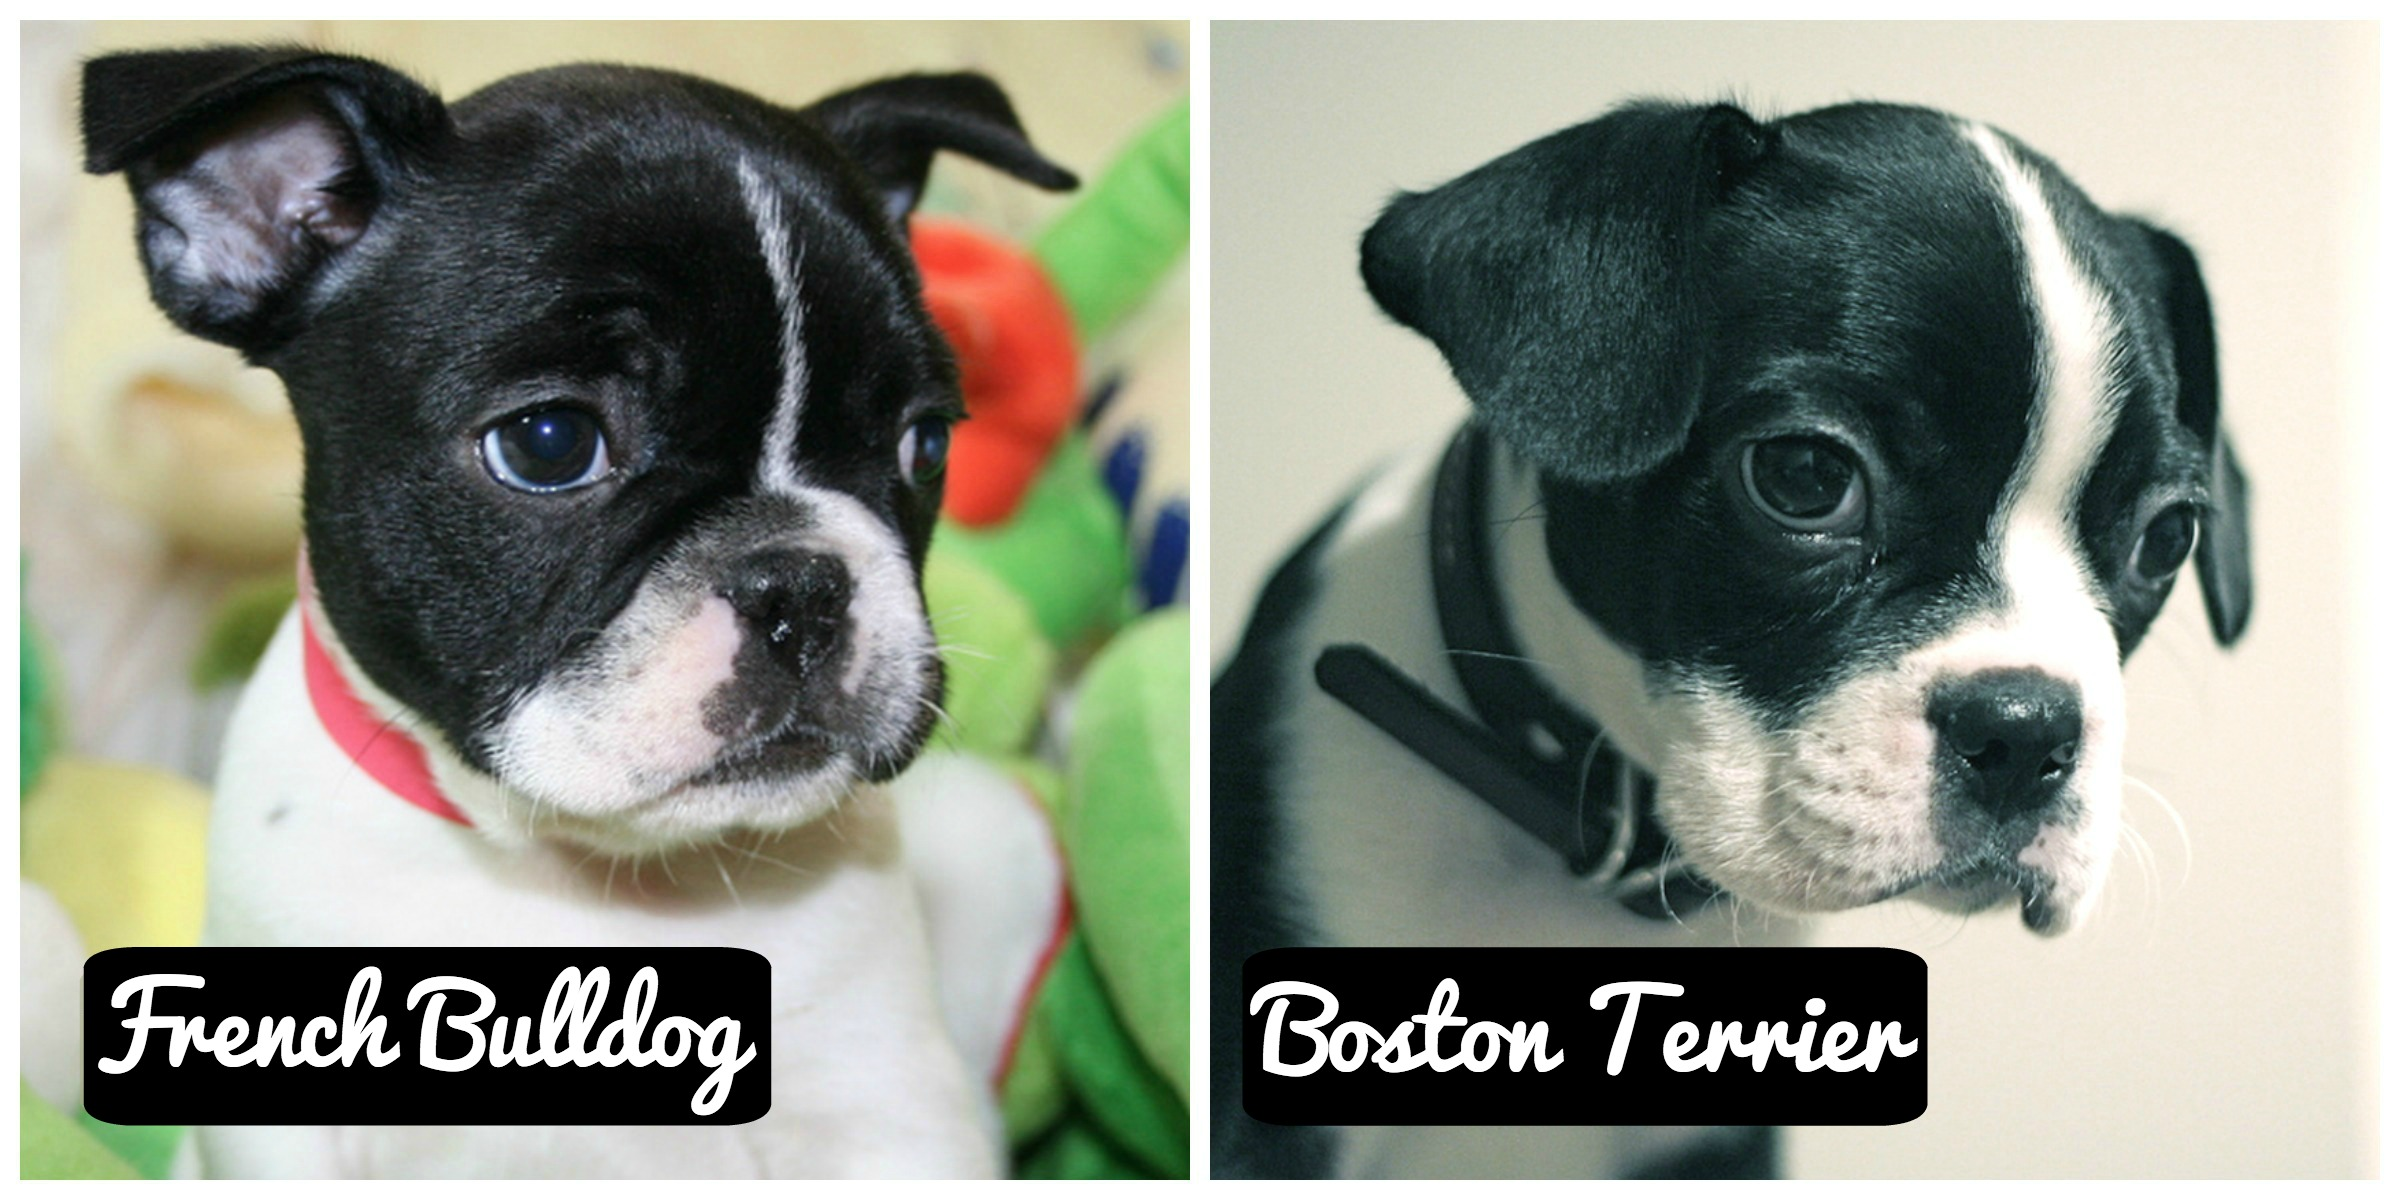 frenchbulldog boston terrier is it a french bulldog or a boston terrier gublog 8768